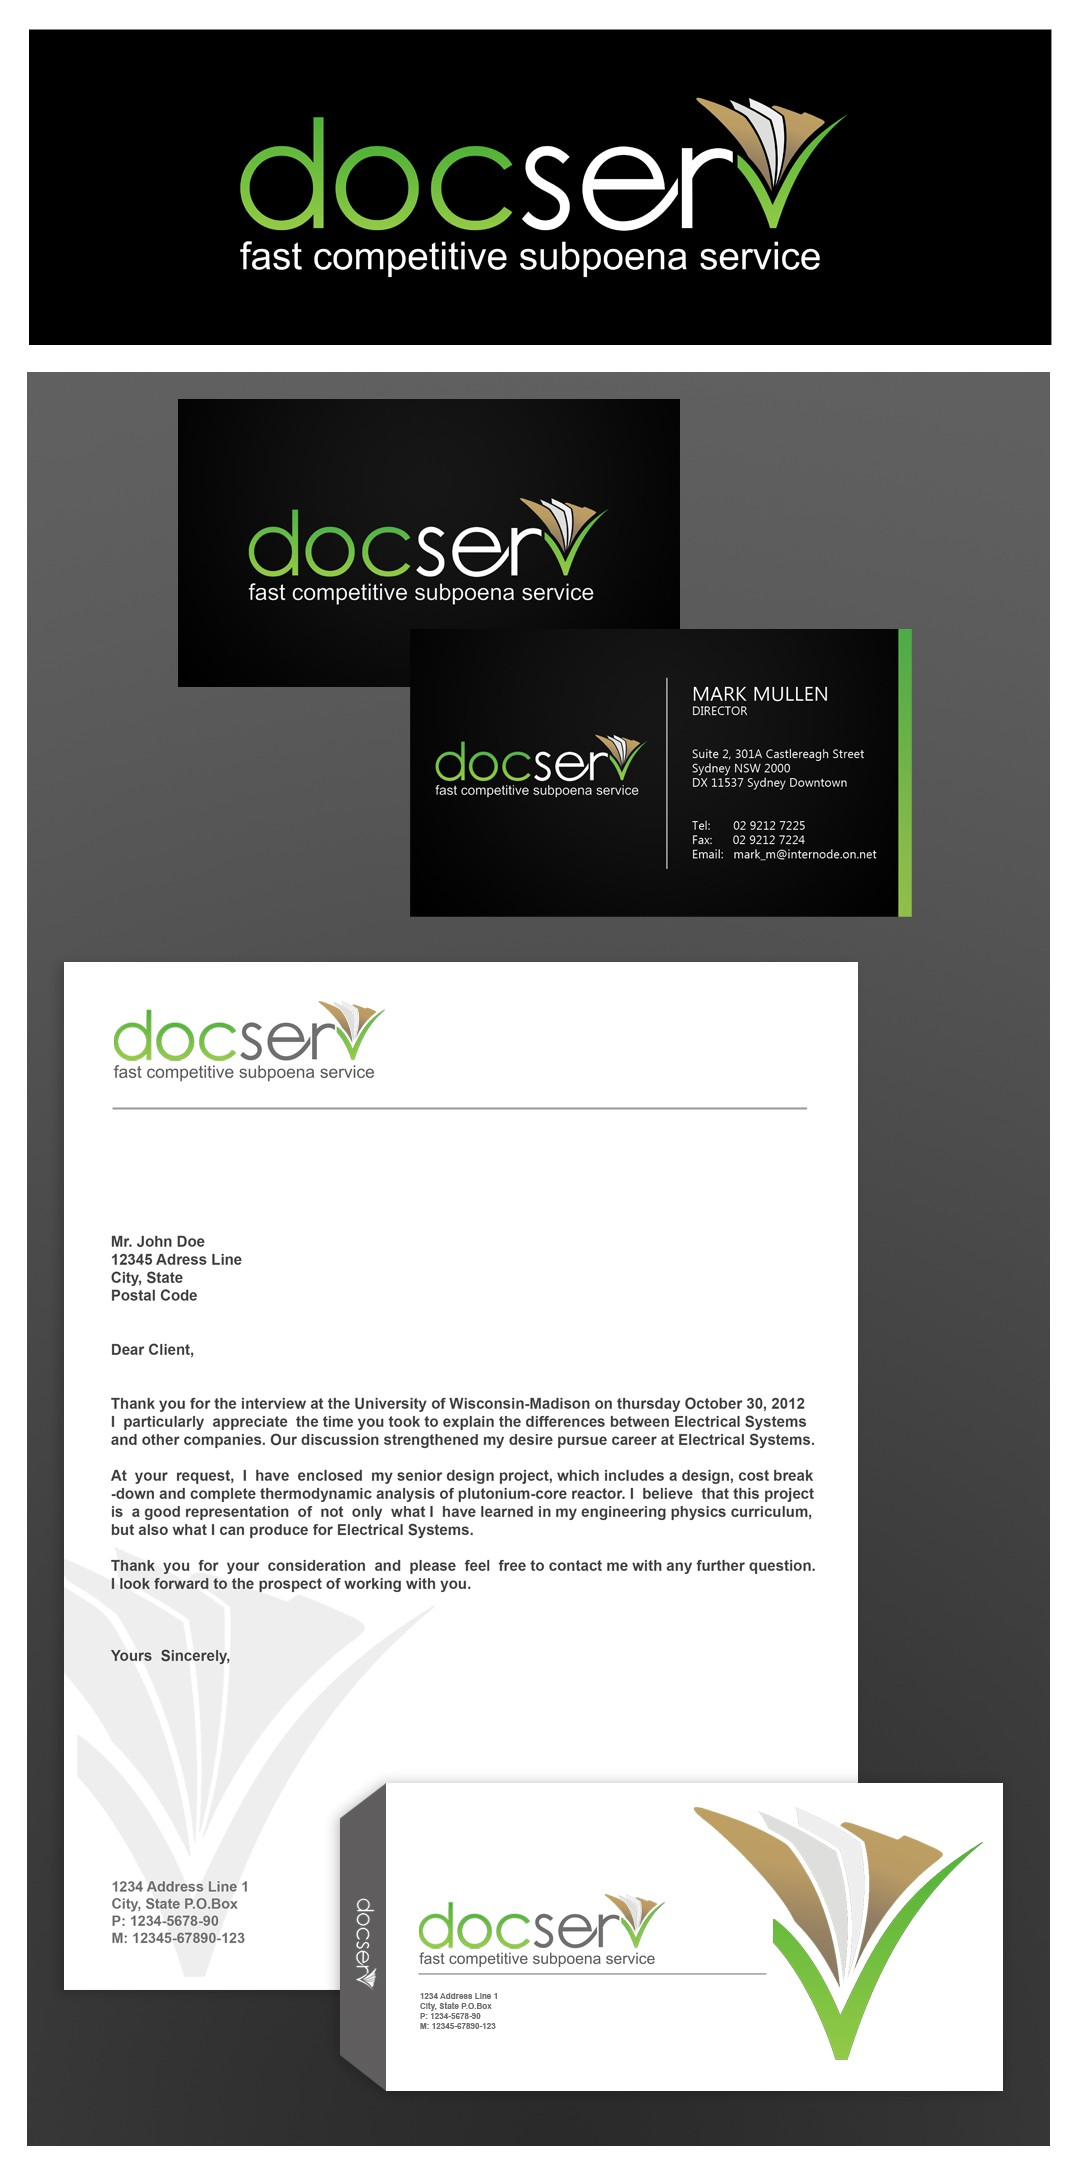 Create the next logo and business card for DOCSERV